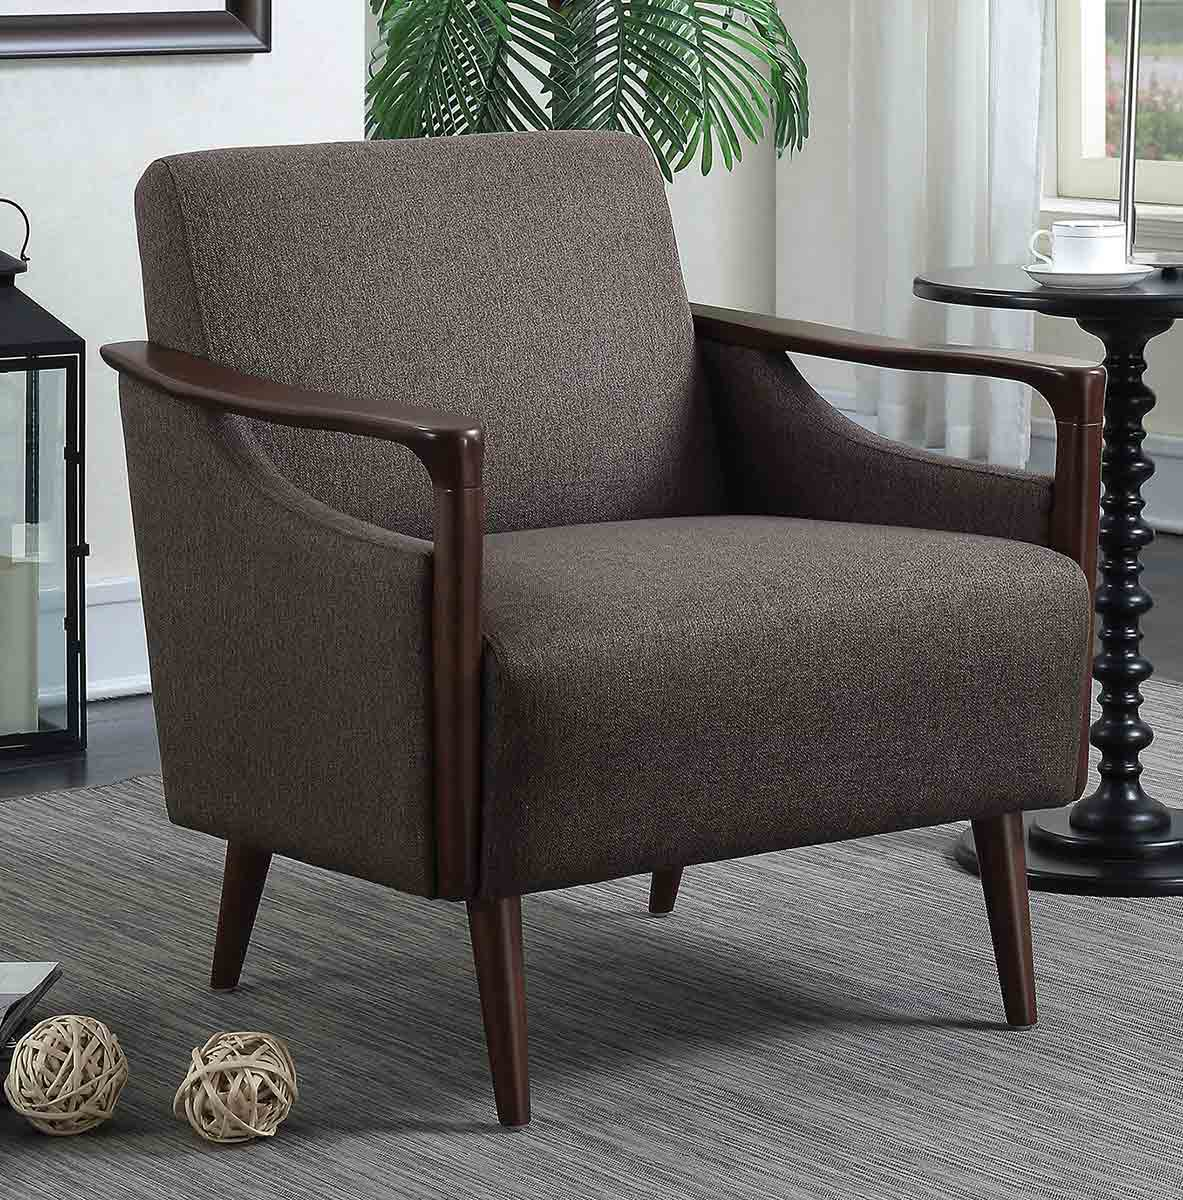 Coaster 904045 Accent Chair - Brown